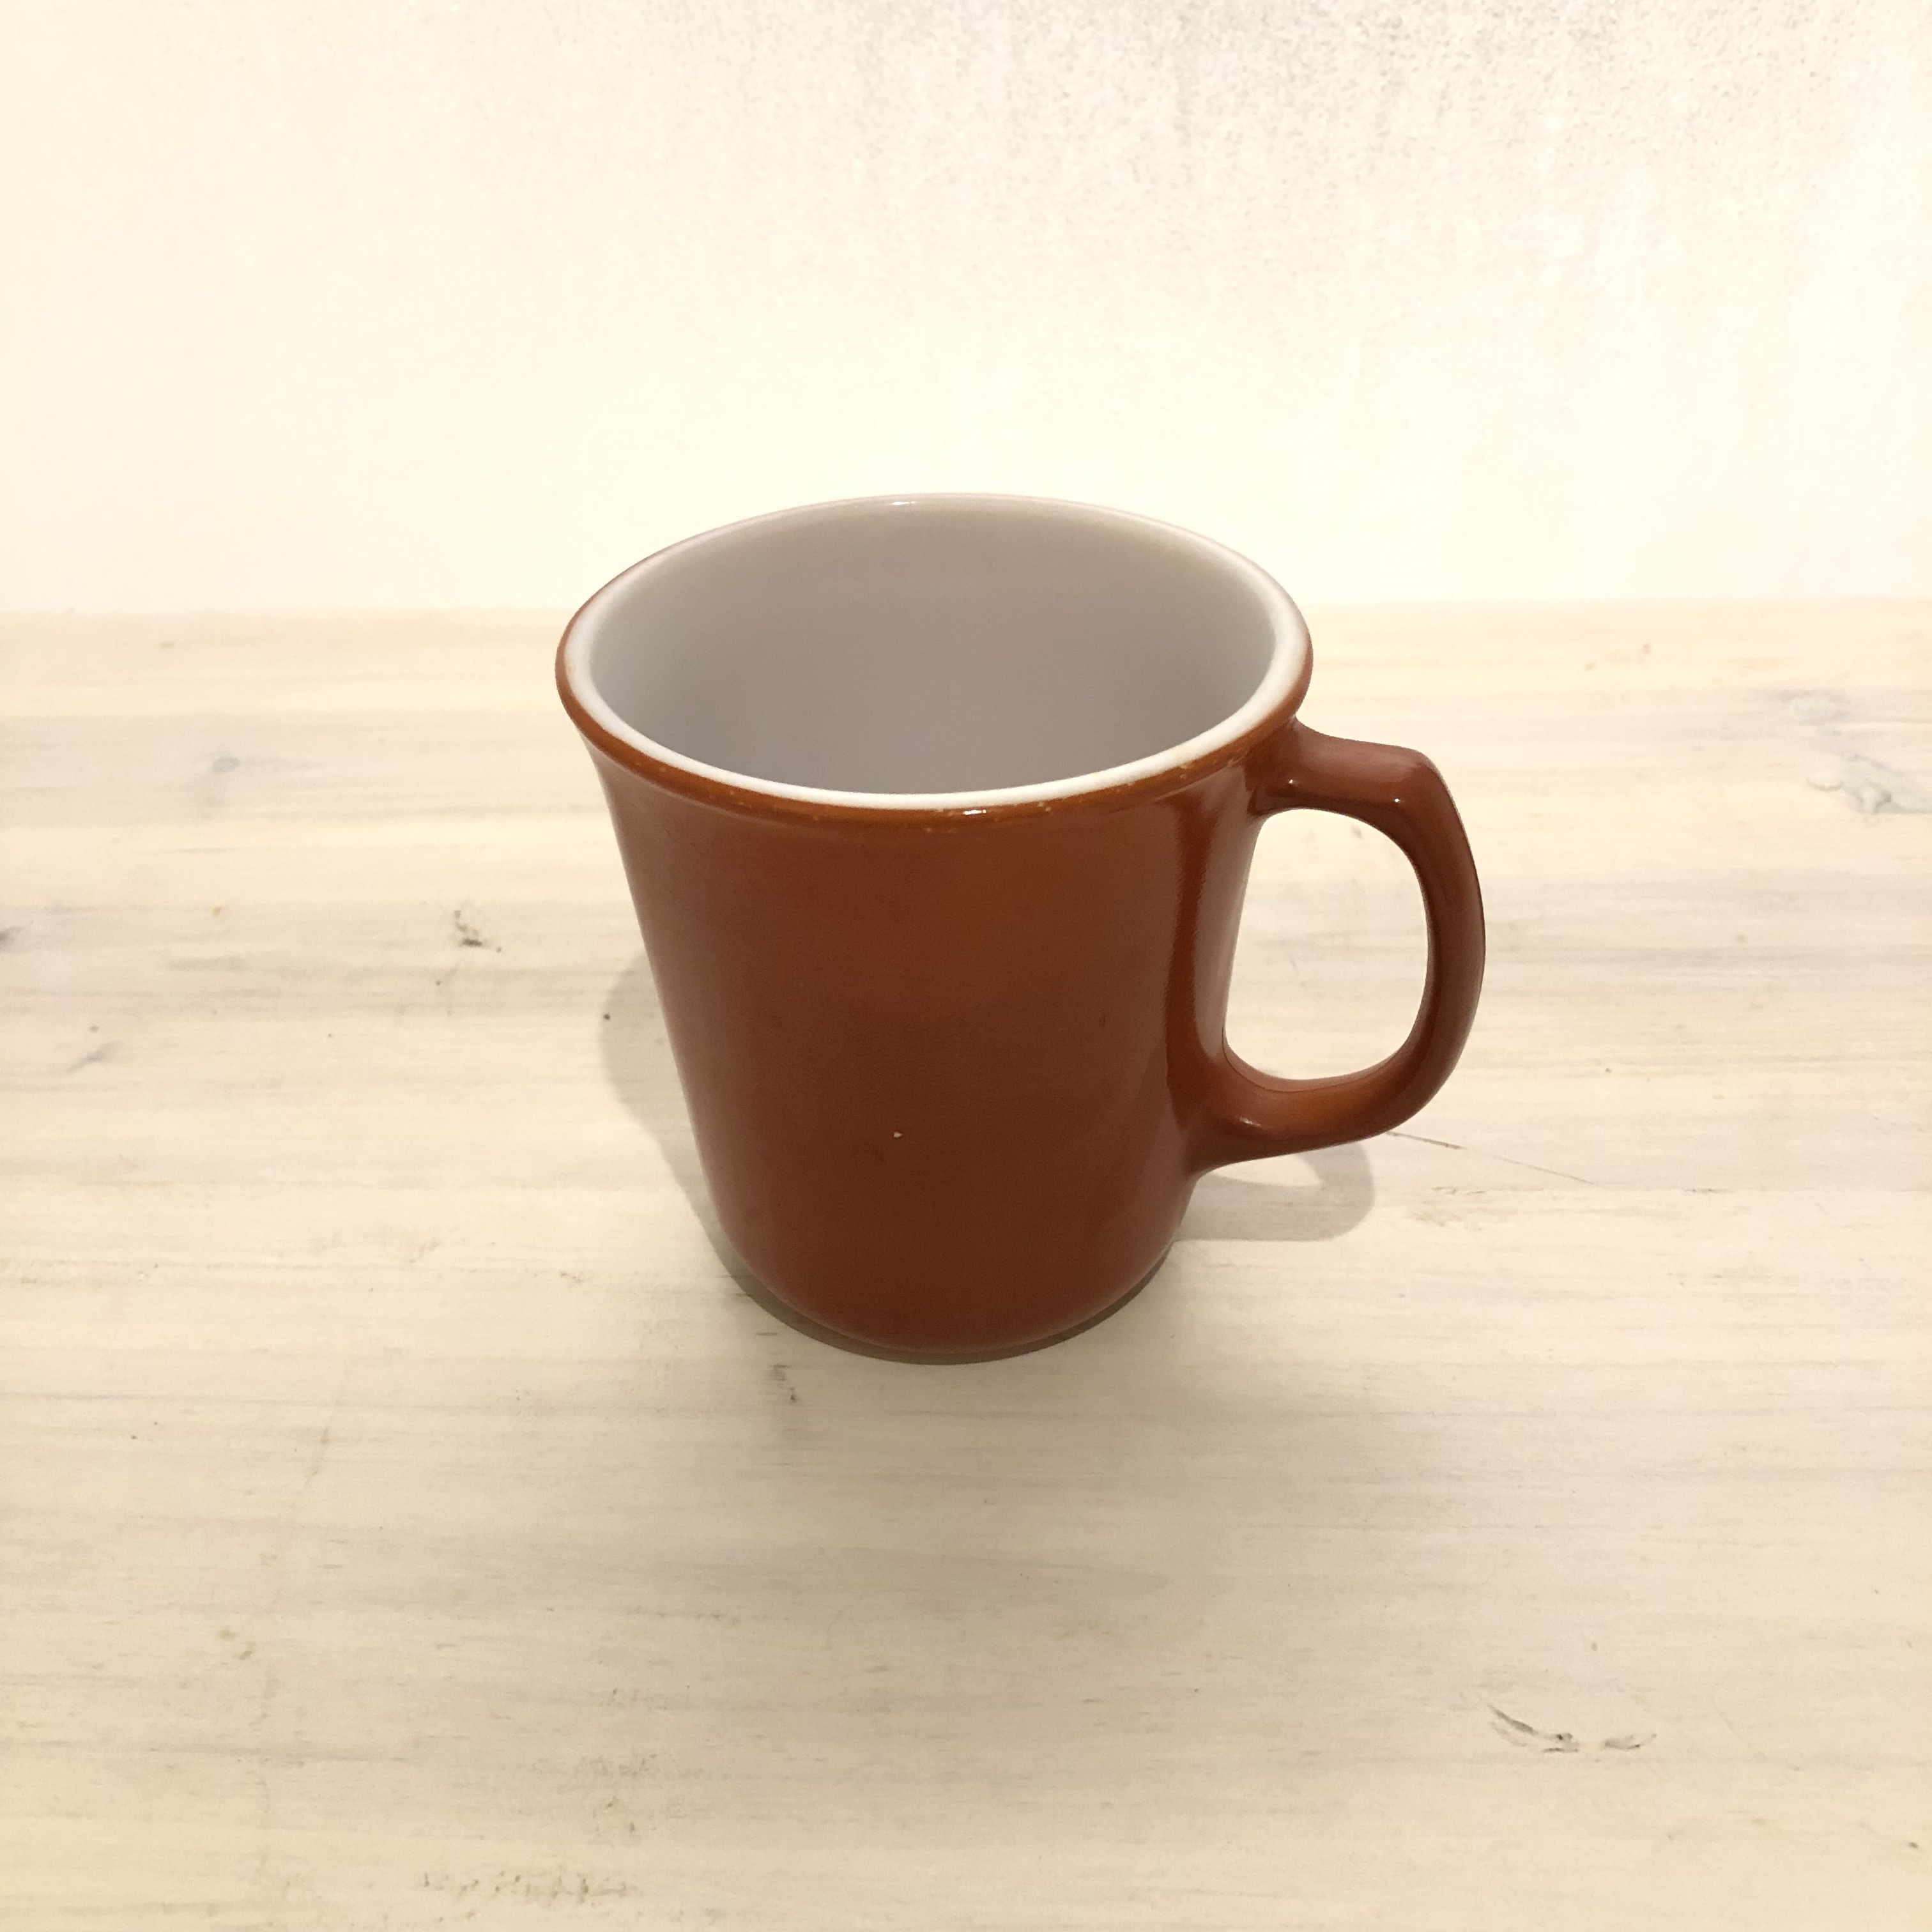 Old PYREX red-brown mug